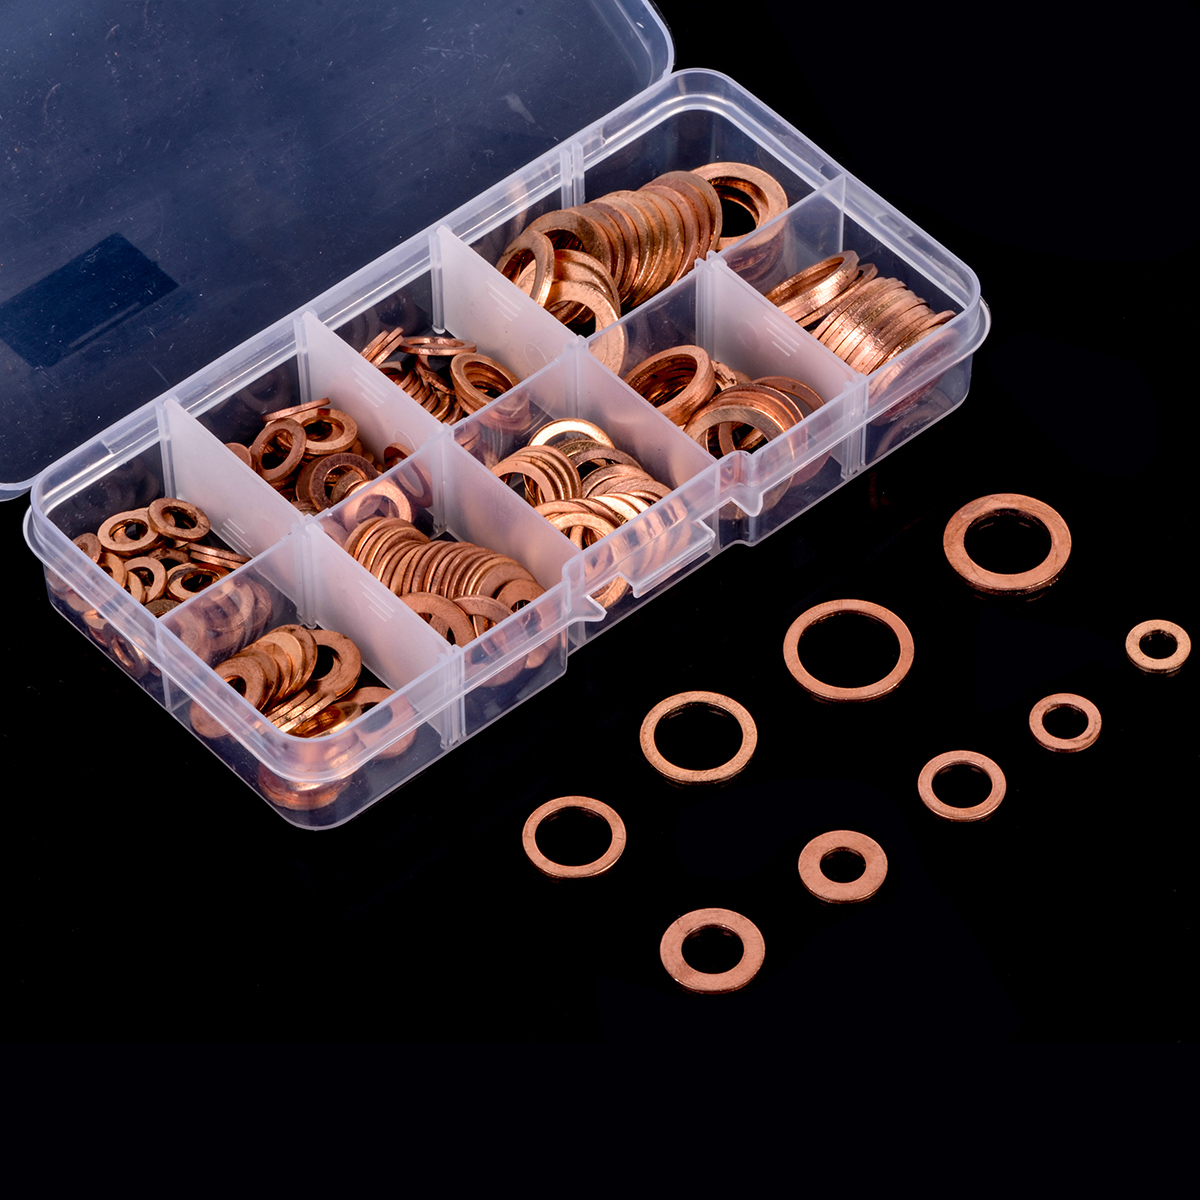 200pcs Solid Copper Washer Gasket Set Flat Ring Sump Plug Oil Seal Fittings Washers Fastener Hardware Accessories M5-M14 100 20pcs 10 14 1mm copper sealing washer solid gasket sump plug oil for boat crush washer flat seal ring tool parts accessories